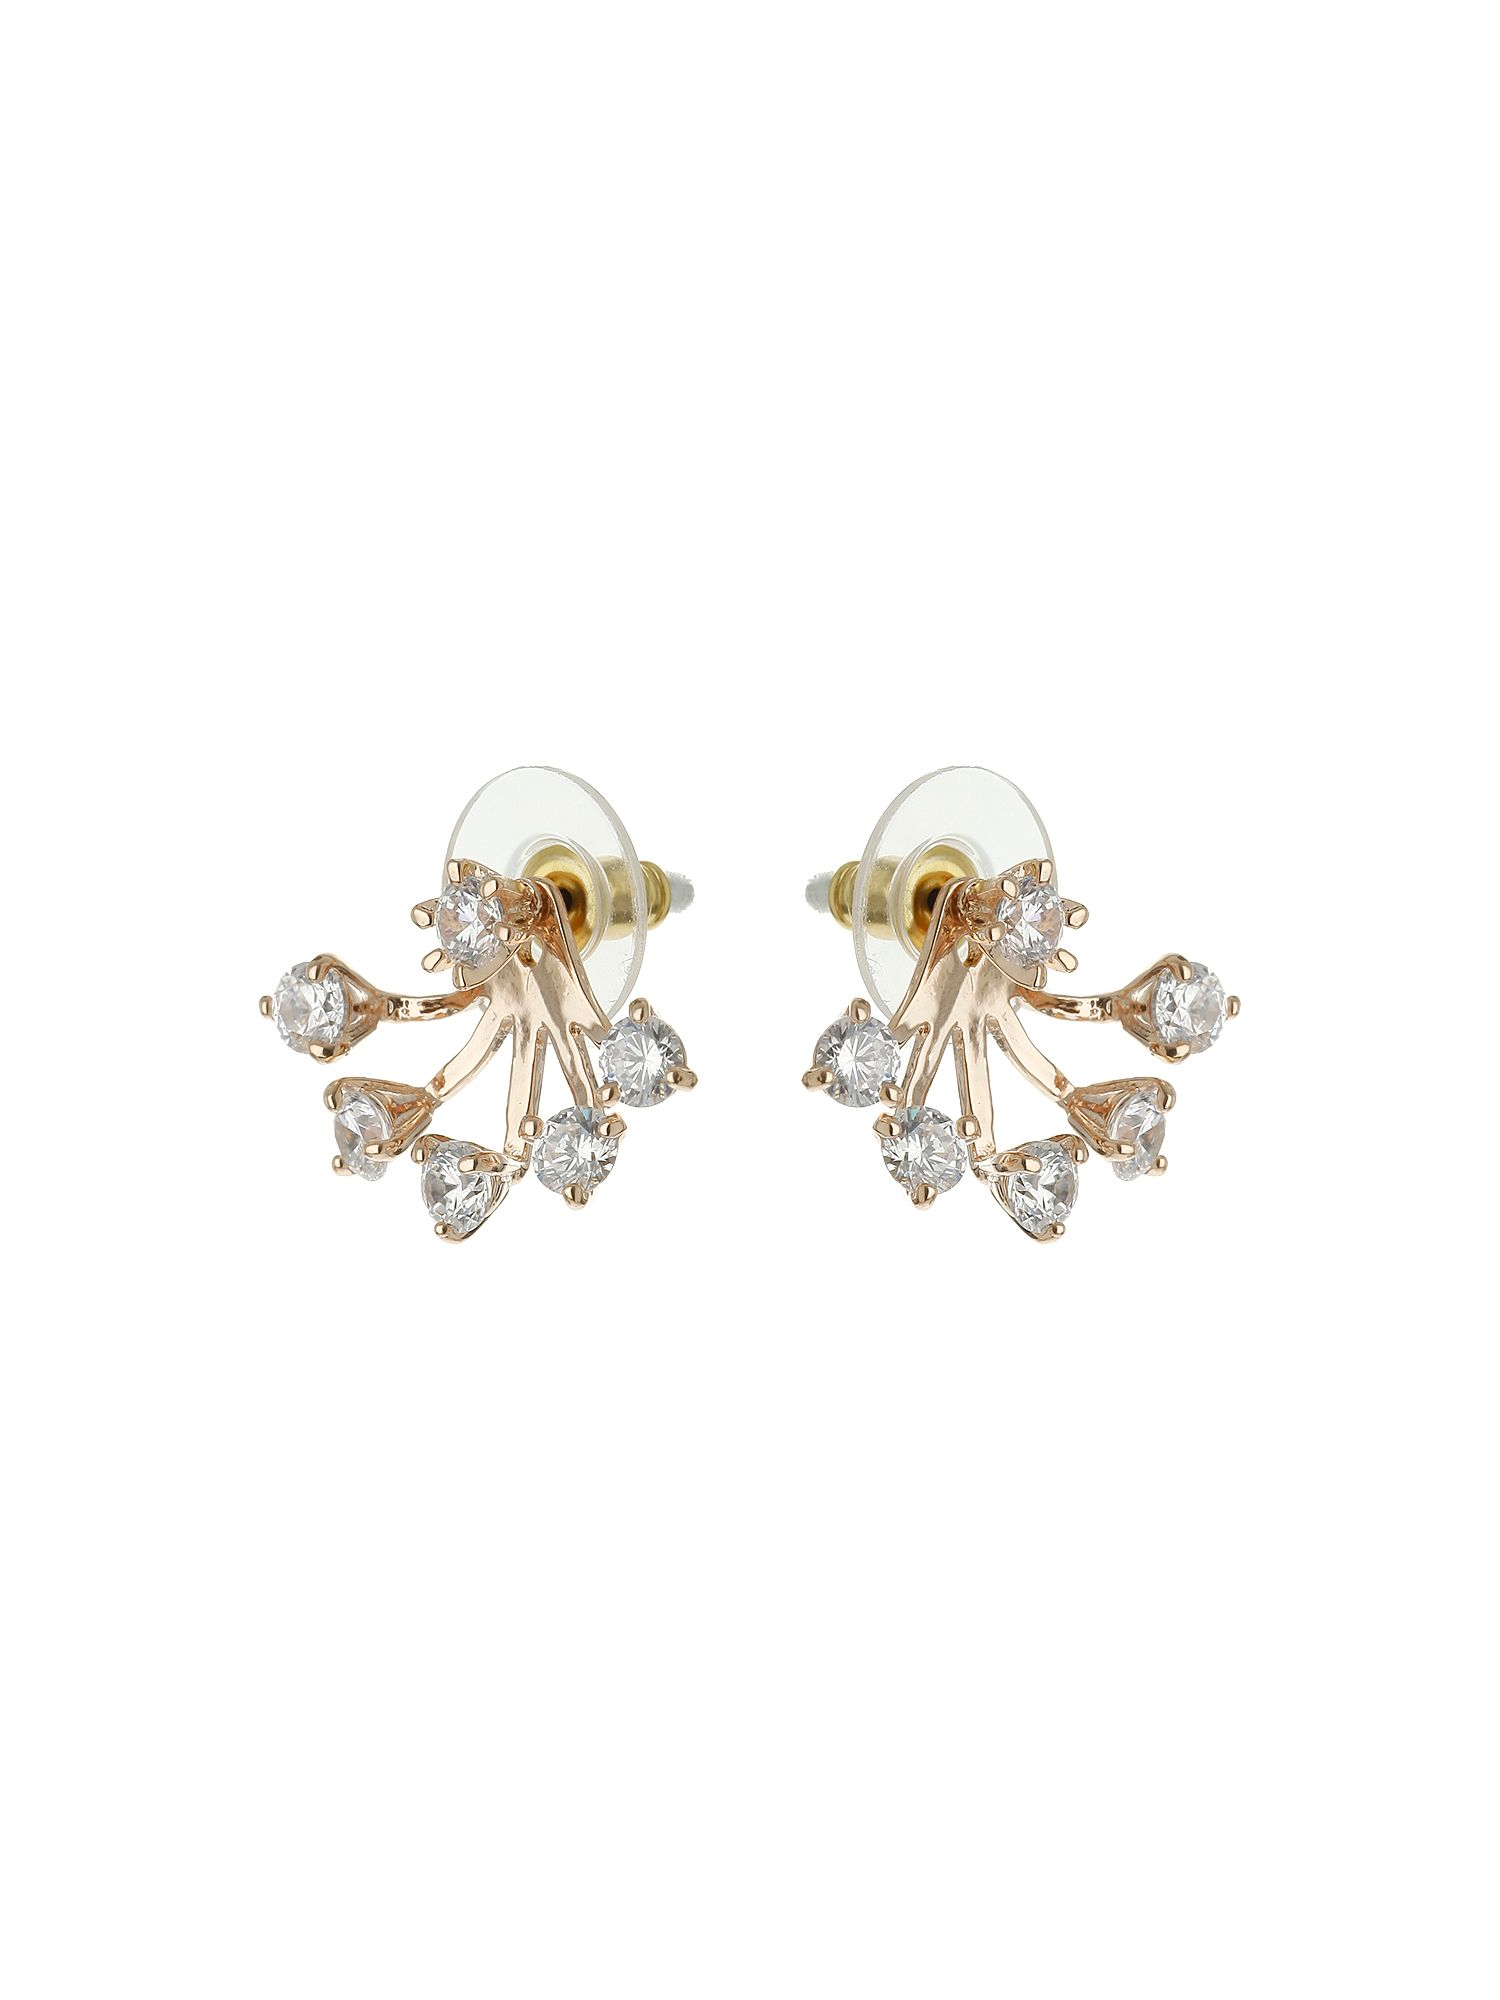 mikey spread design twin stud earring